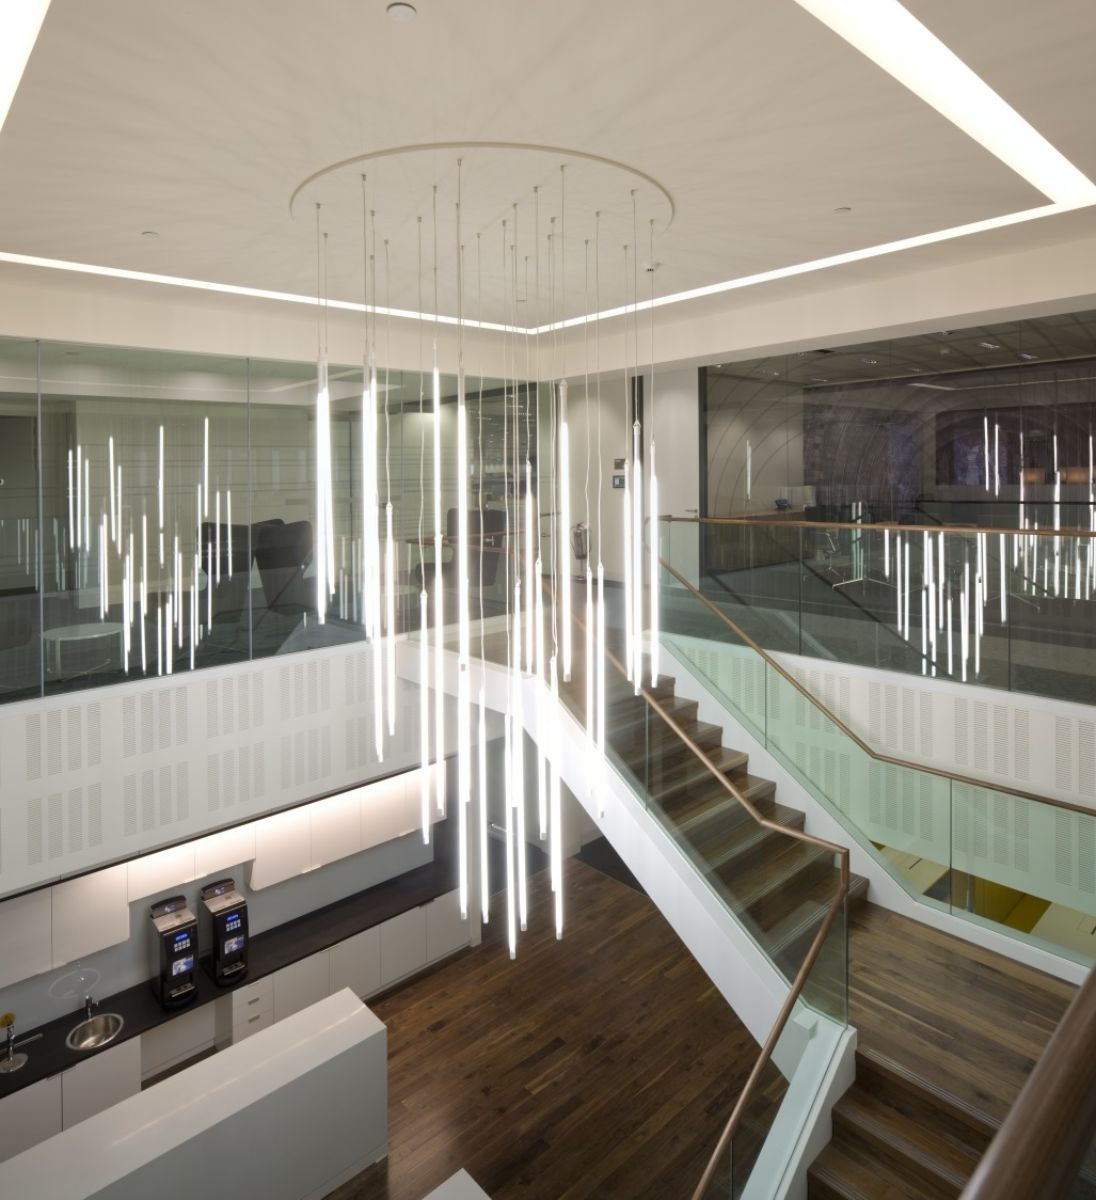 Suspended lighting above office staircase